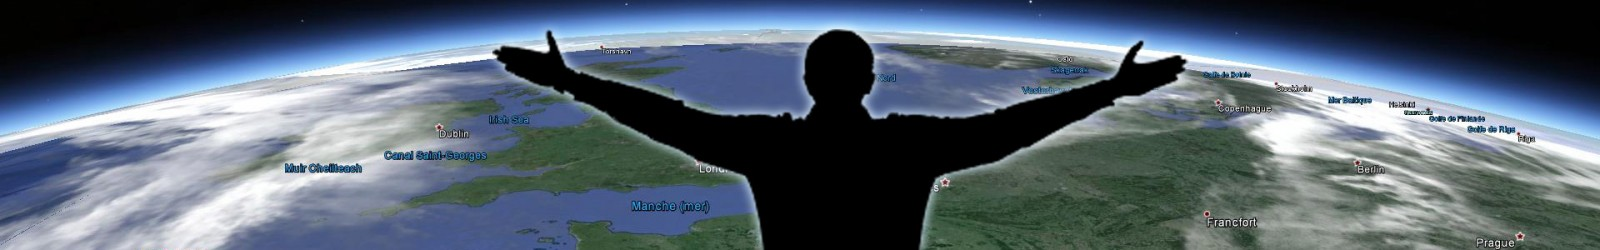 Planysphere promenade sur Google Earth sans contact